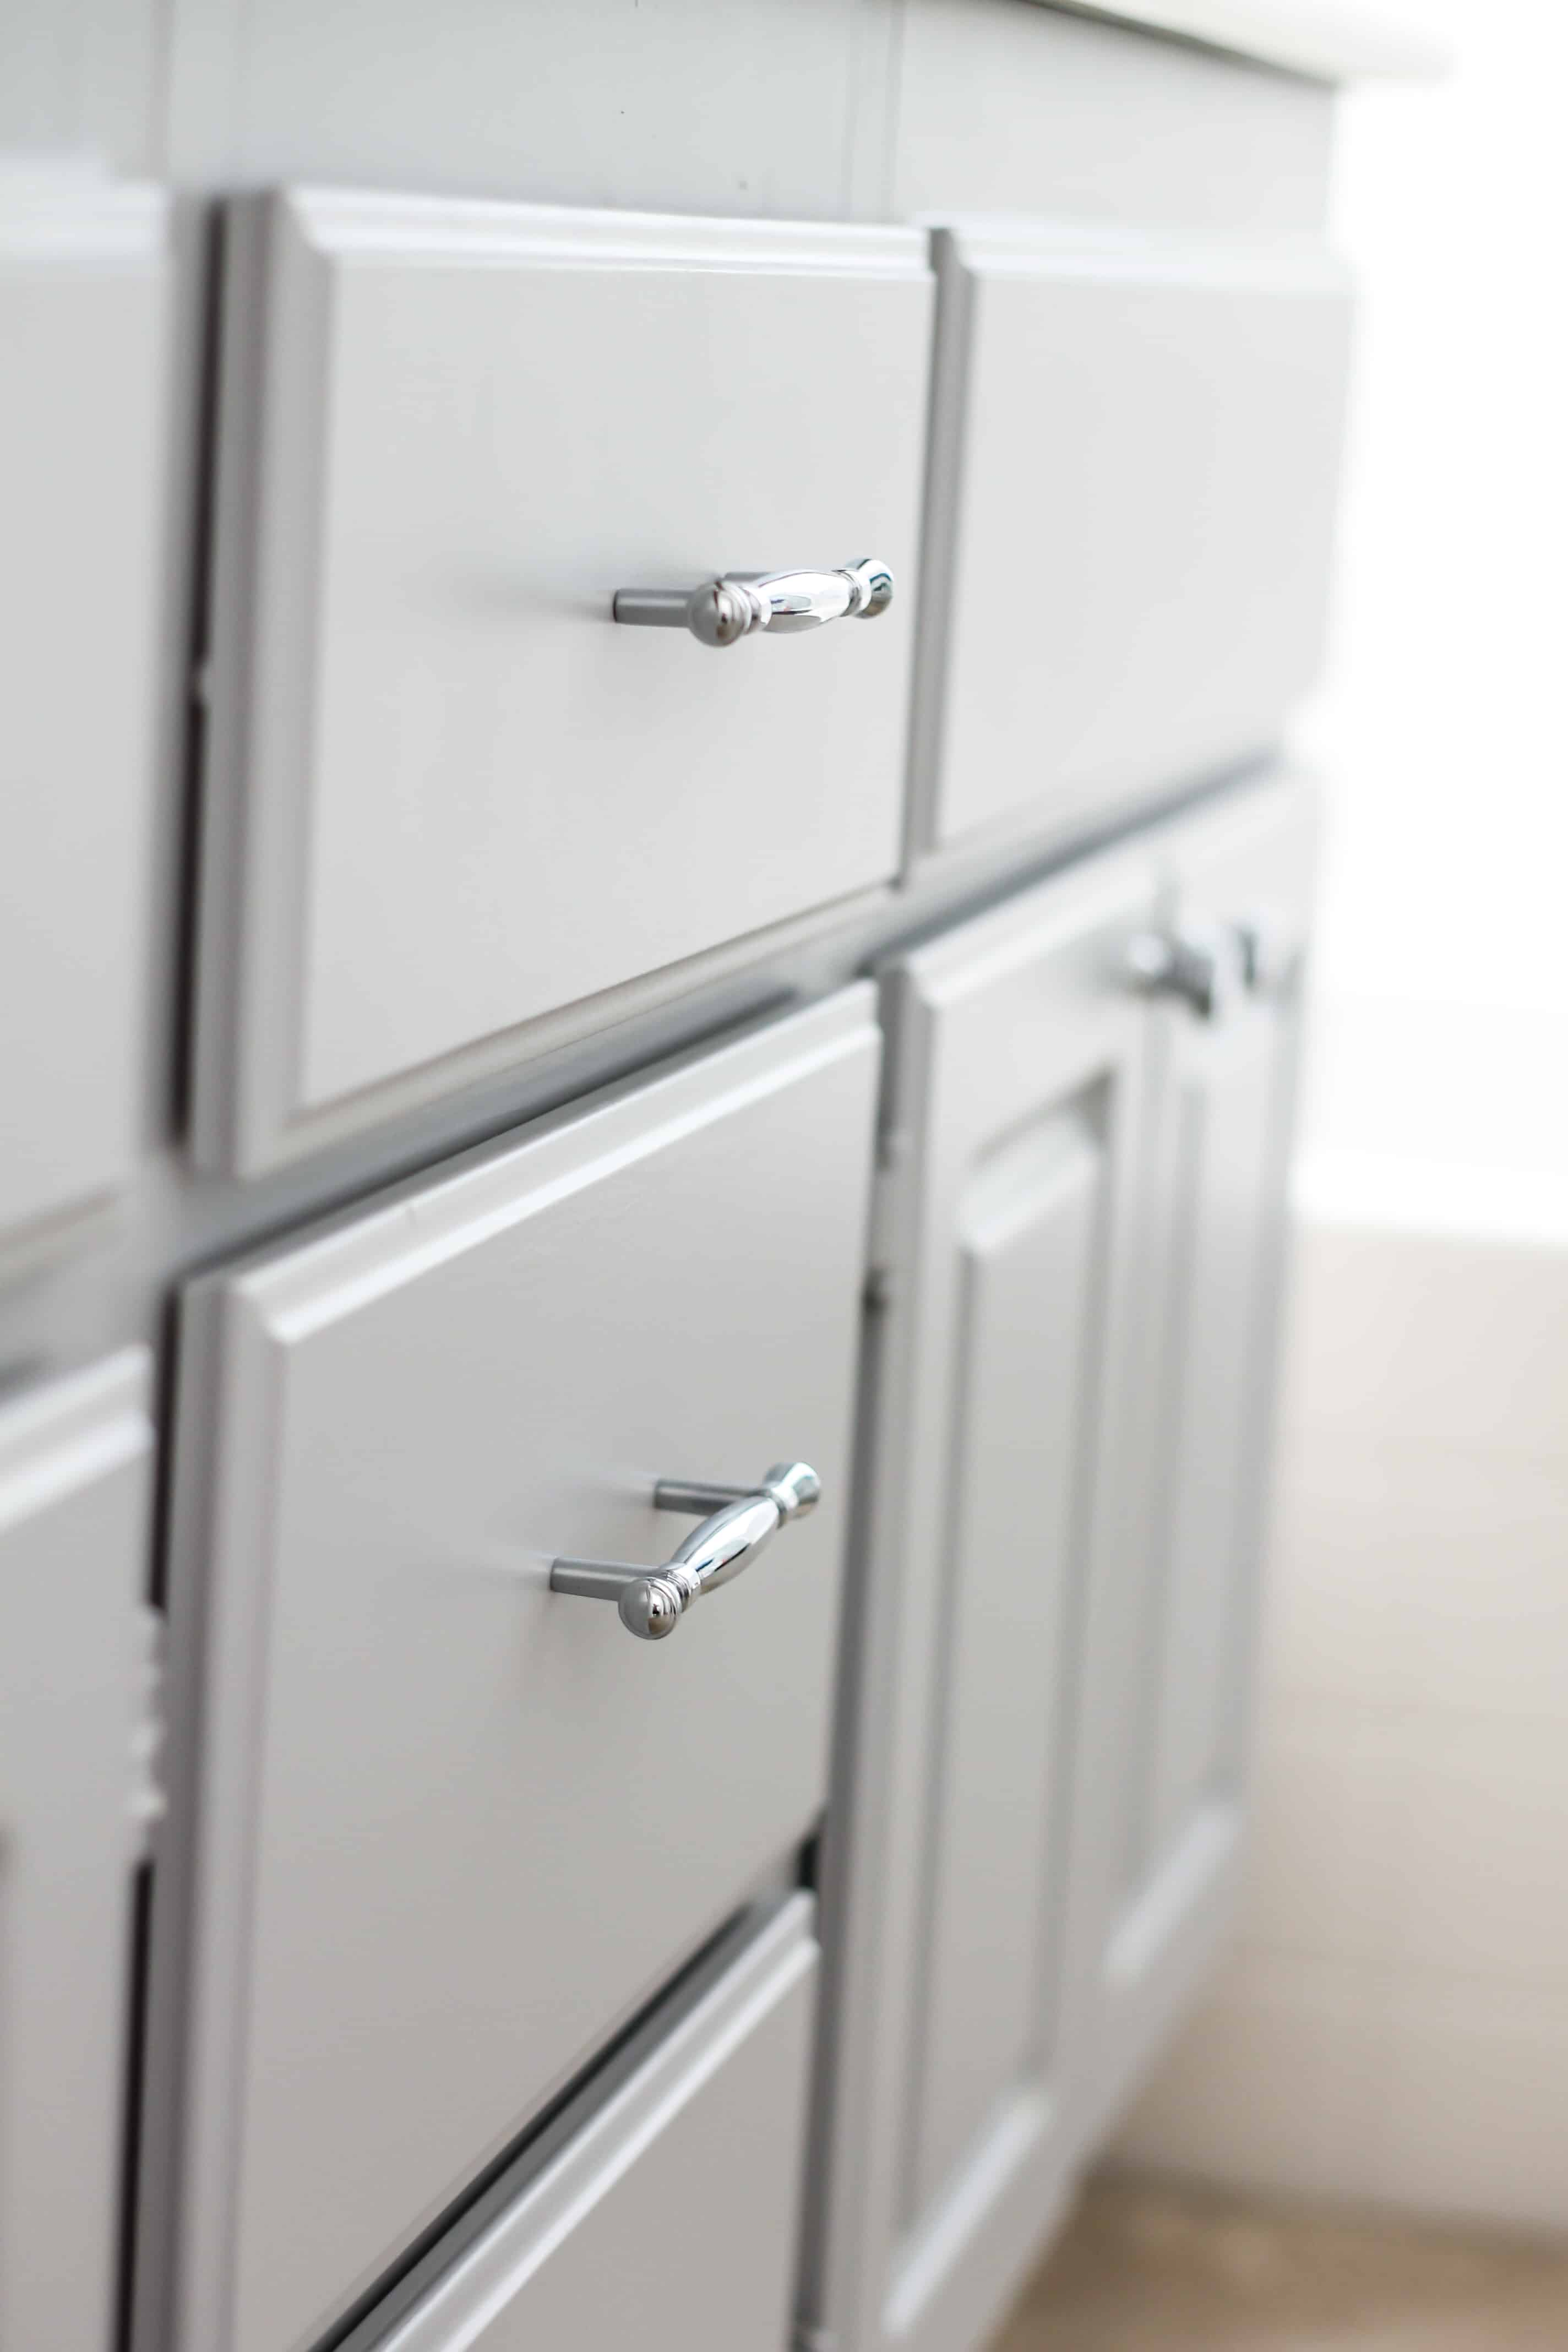 Upgrade your Boring Builder Grade bathroom cabinets with paint & hardware - get all the details here!